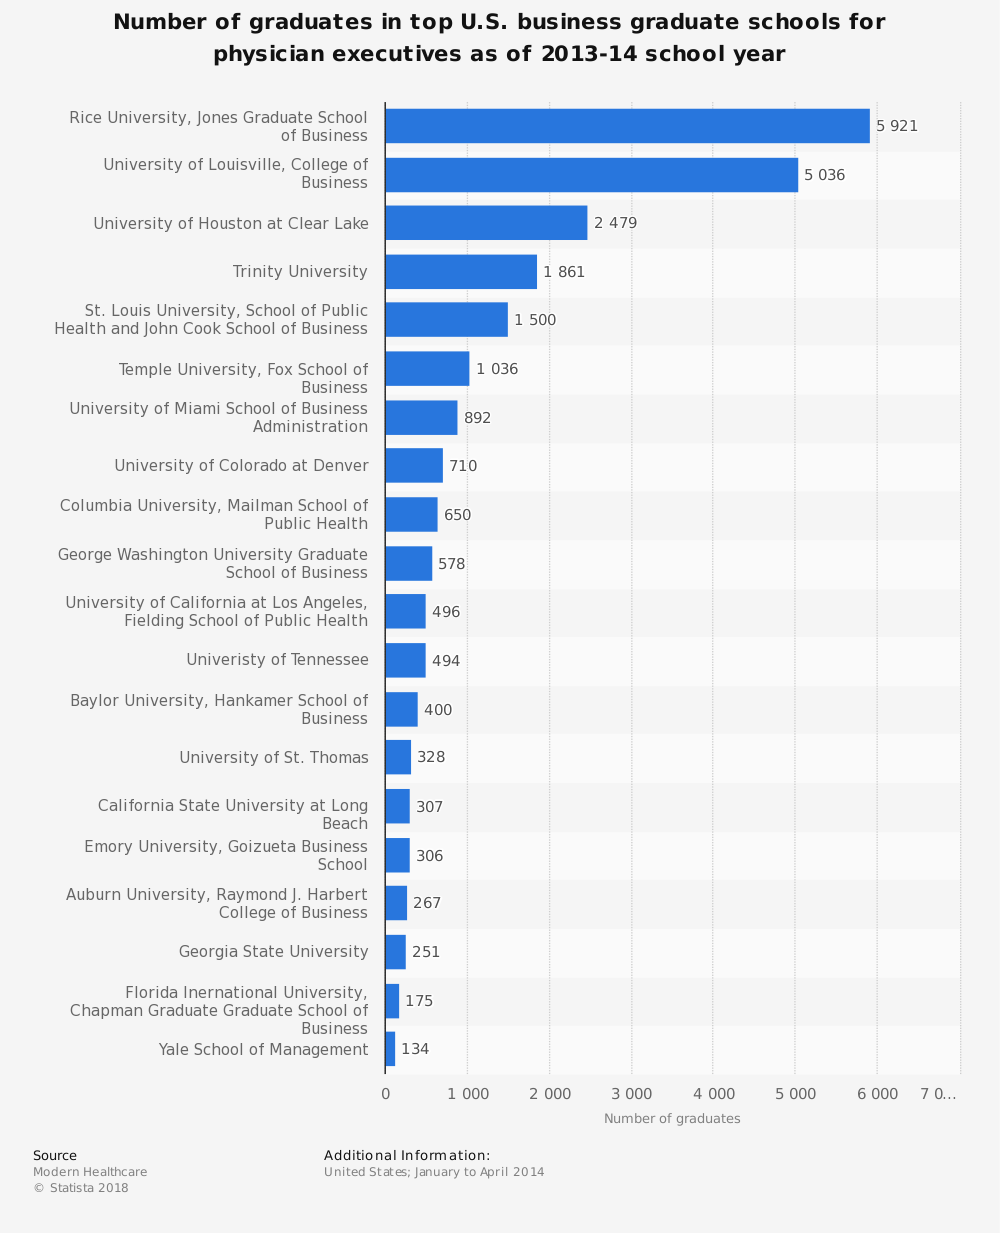 Statistic: Number of graduates in top U.S. business graduate schools for physician executives as of 2013-14 school year | Statista